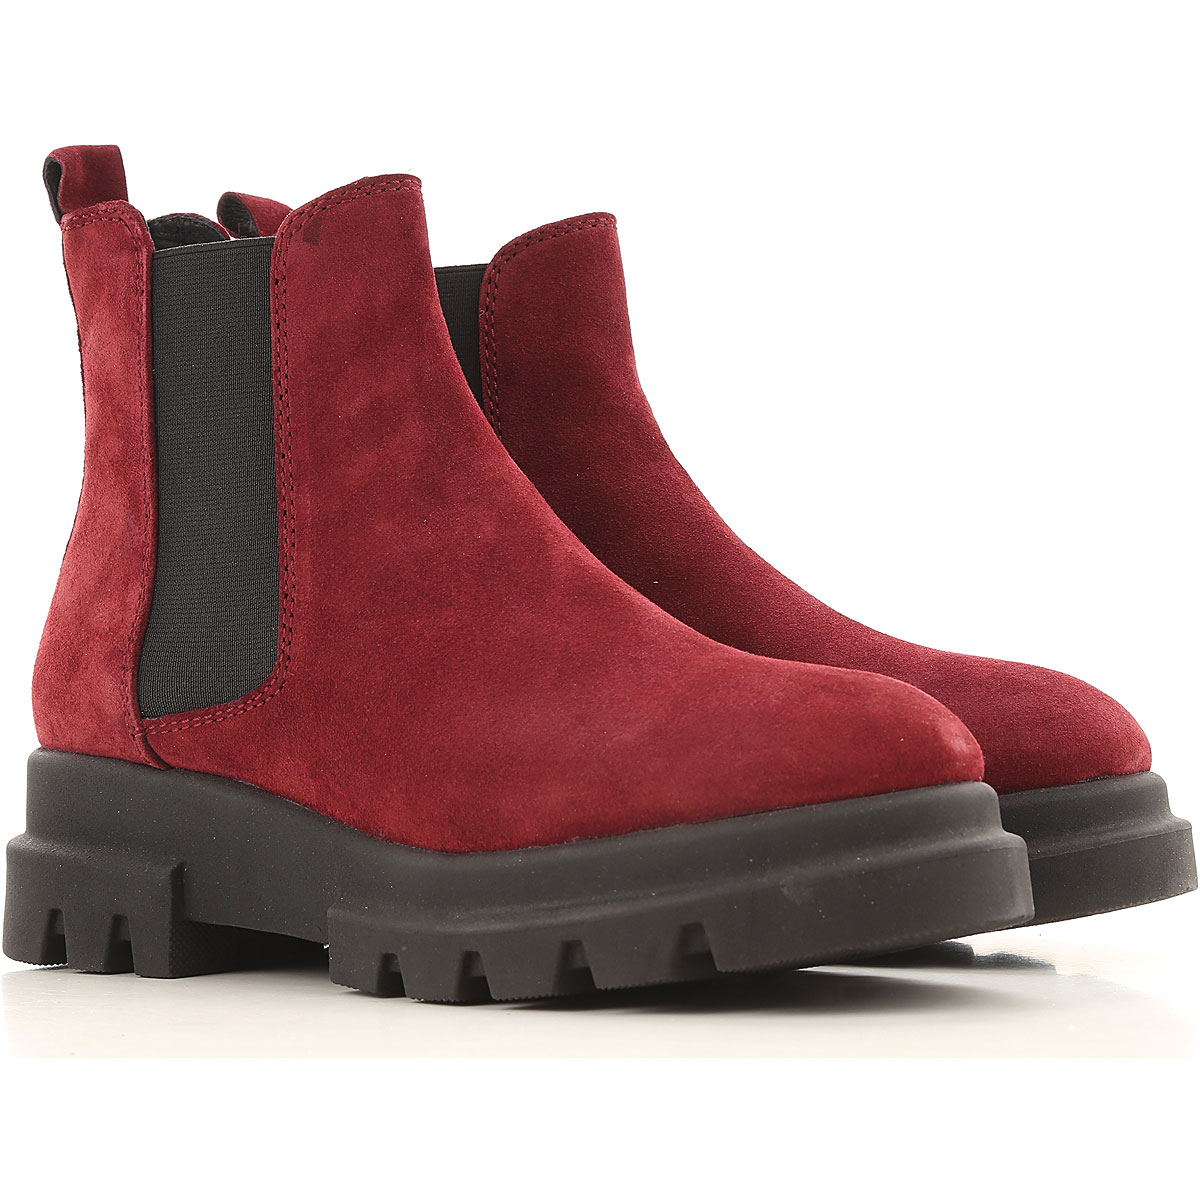 Elvio Zanon Boots for Women, Booties On Sale in Outlet, Plum, Suede leather, 2019, 10 7 9